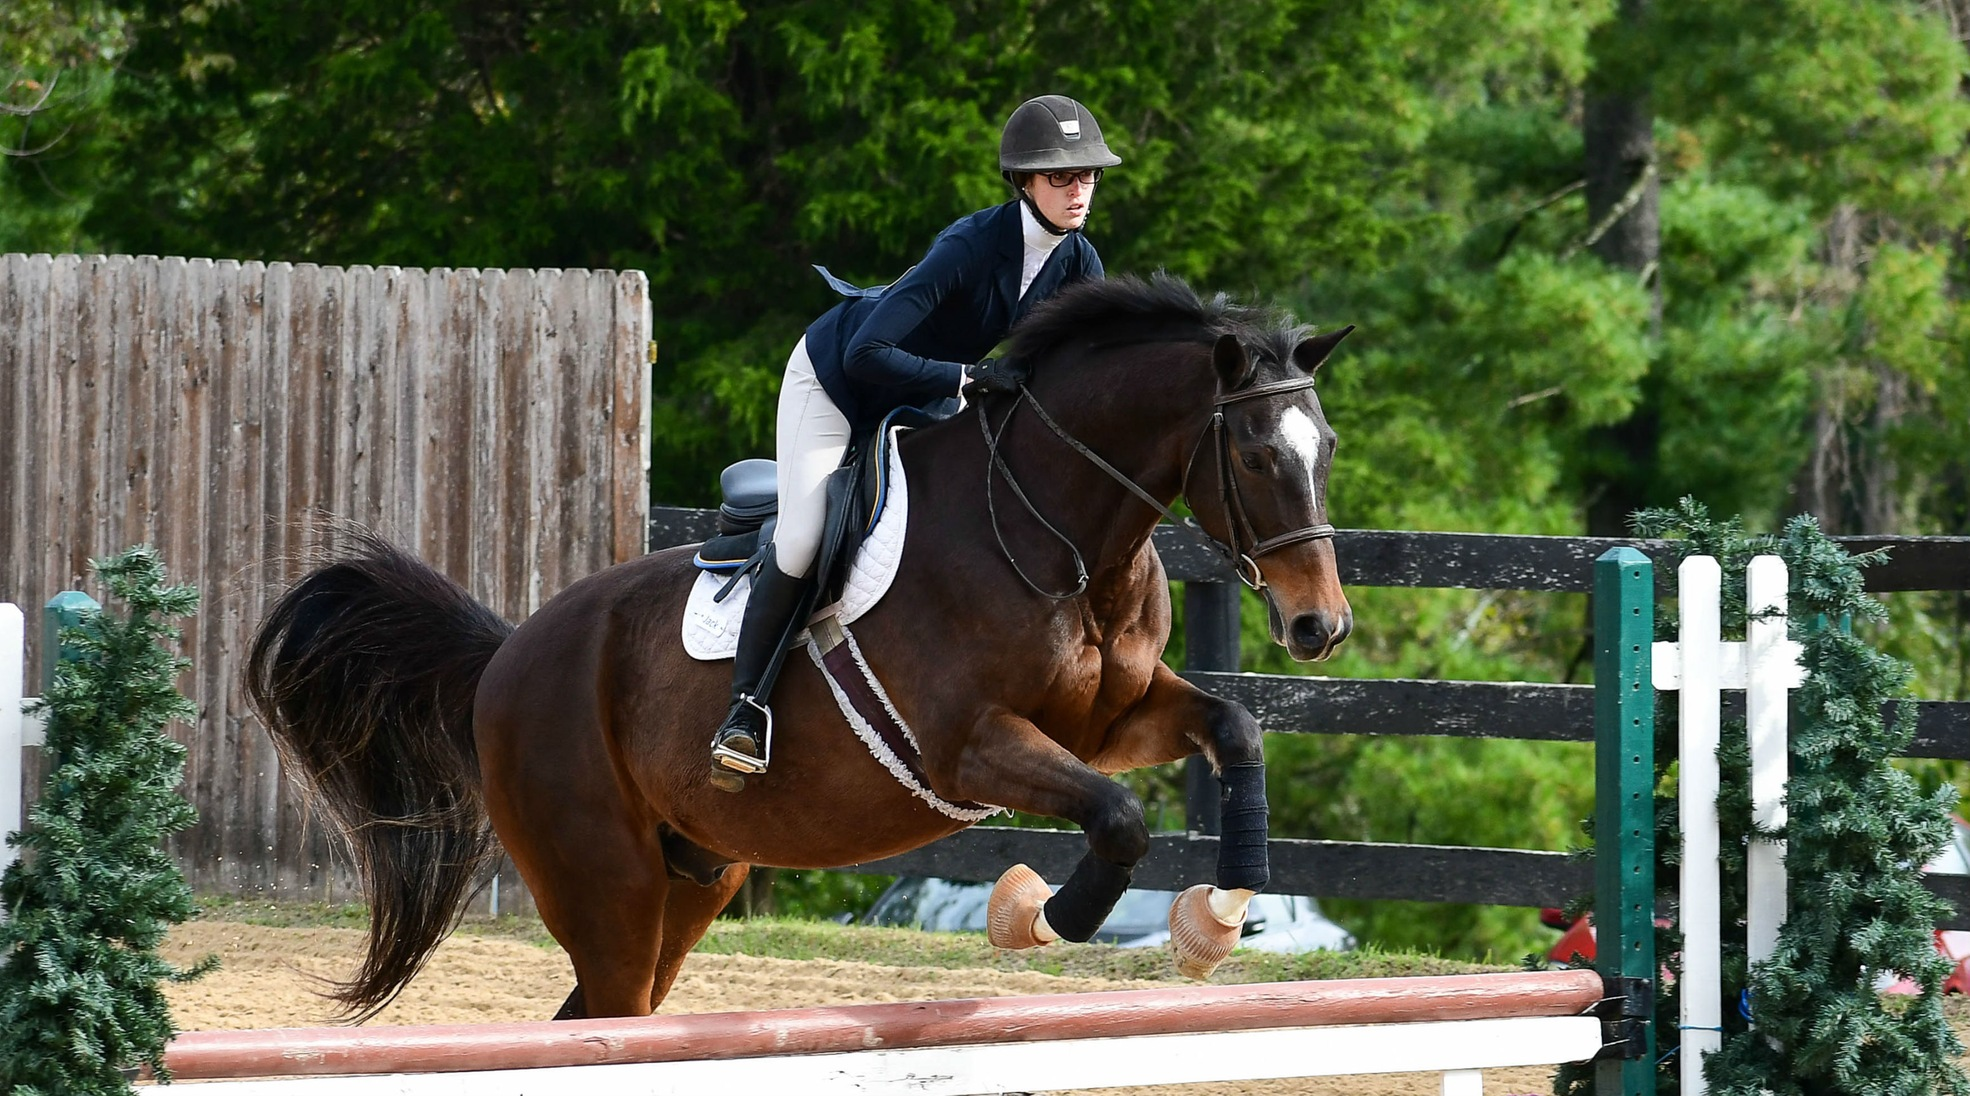 Equestrian Shares Victory at IHSA Show; Increases Lead in Region Standings